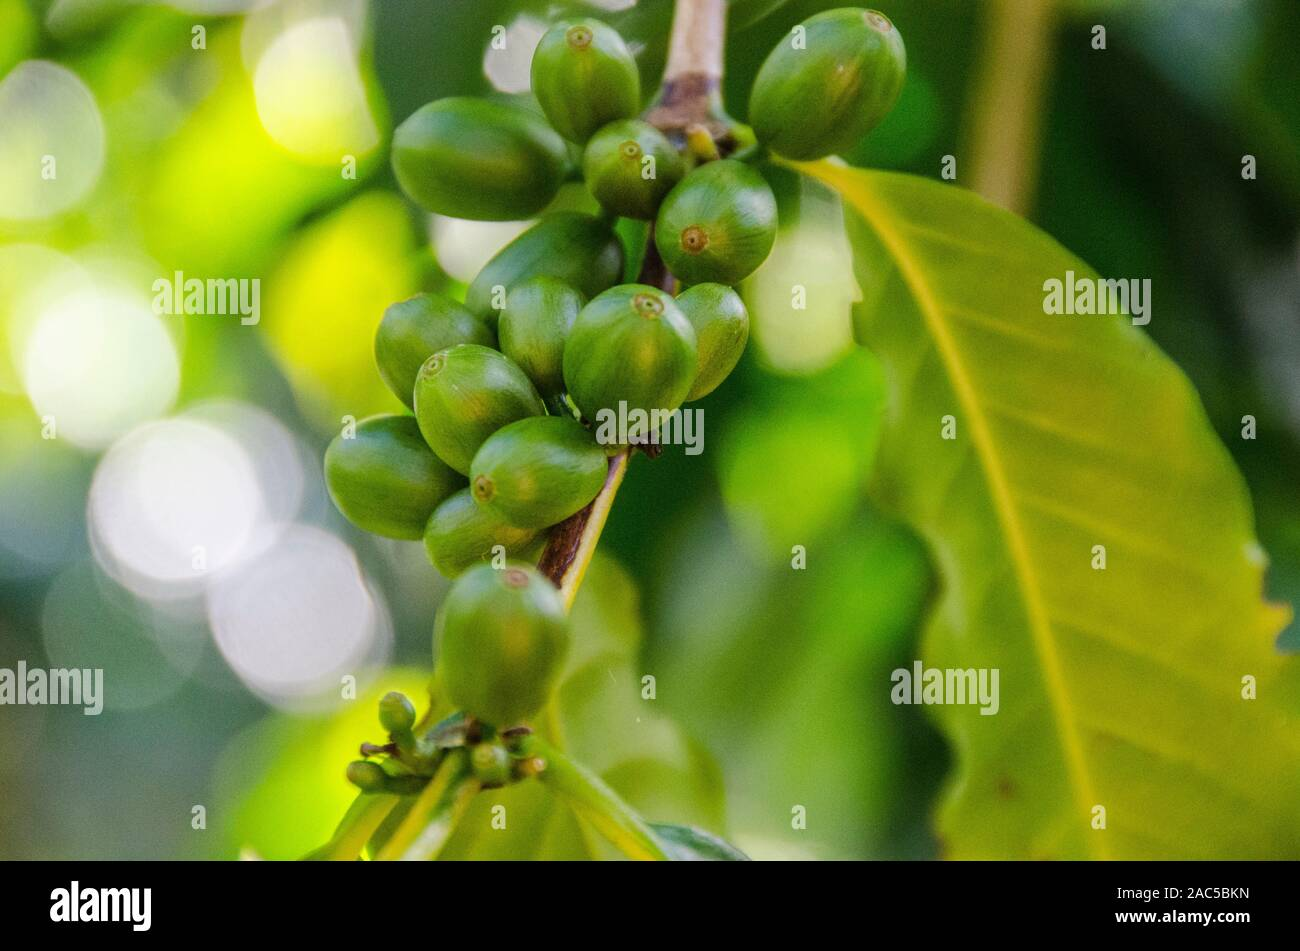 Close-up of green coffee cherries on tree at Kaleo's Koffee orchard in Pa'auilo Mauka on the Big Island. Stock Photo